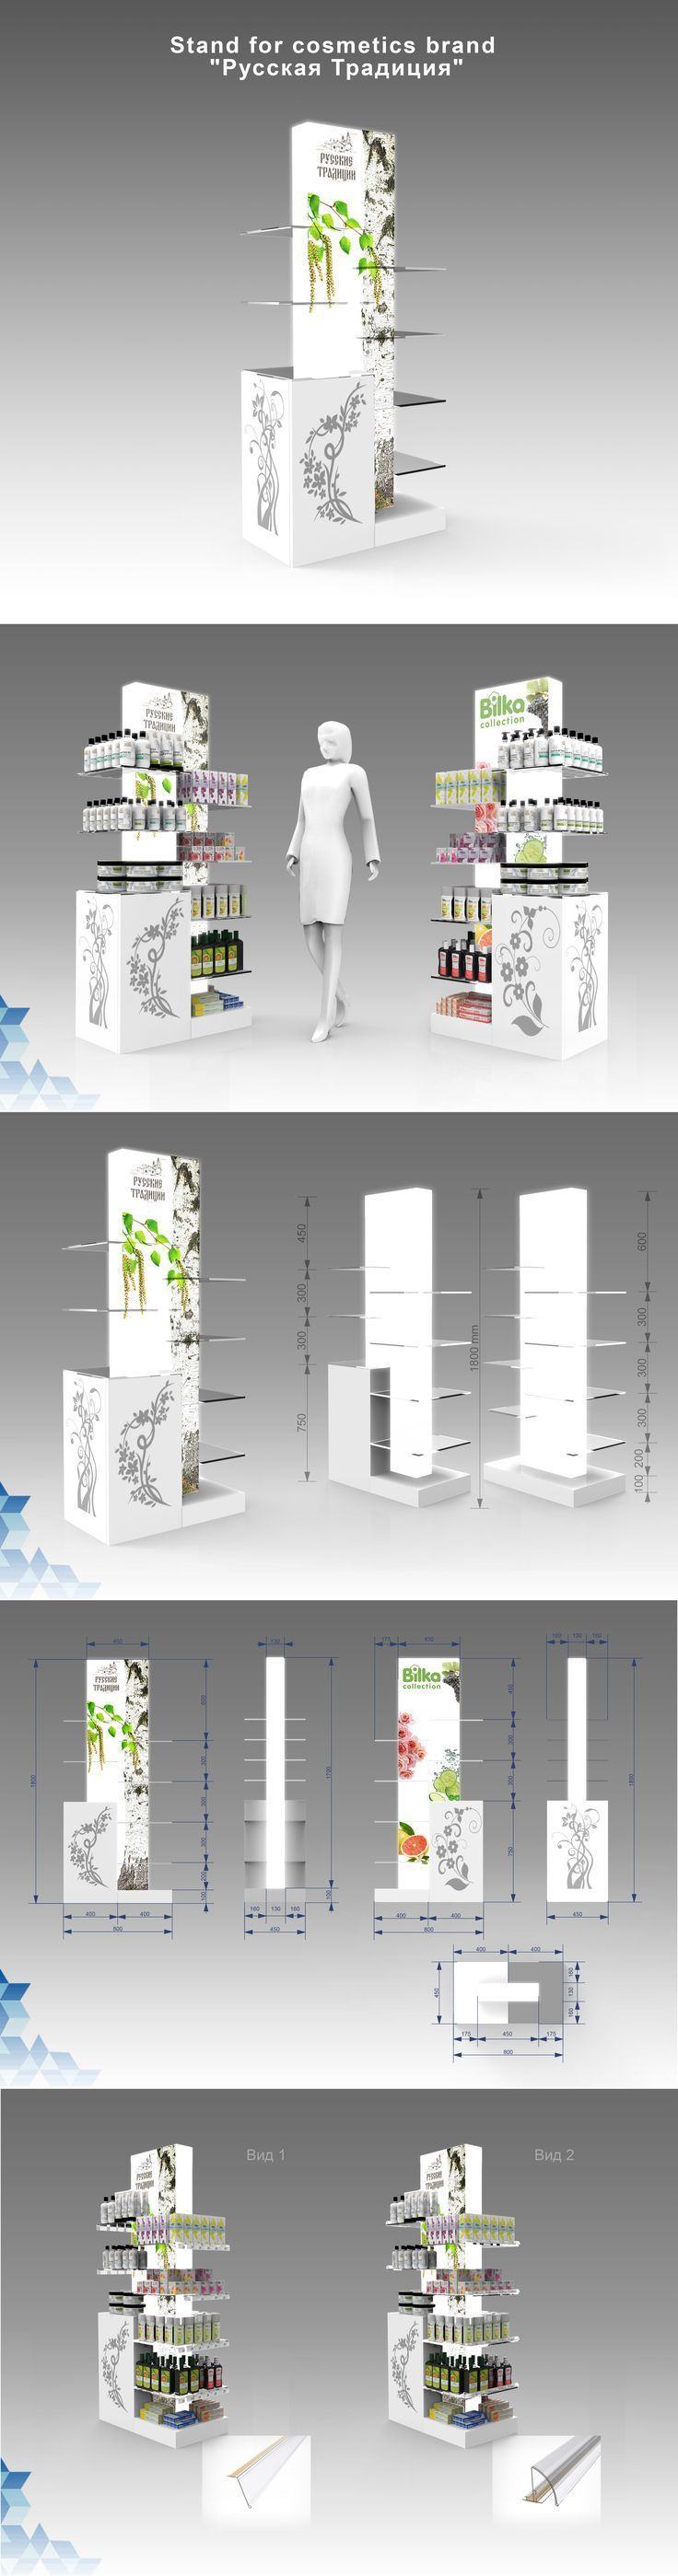 "POSM Design Sales racks for cosmetics brand ""Русская традиция"""